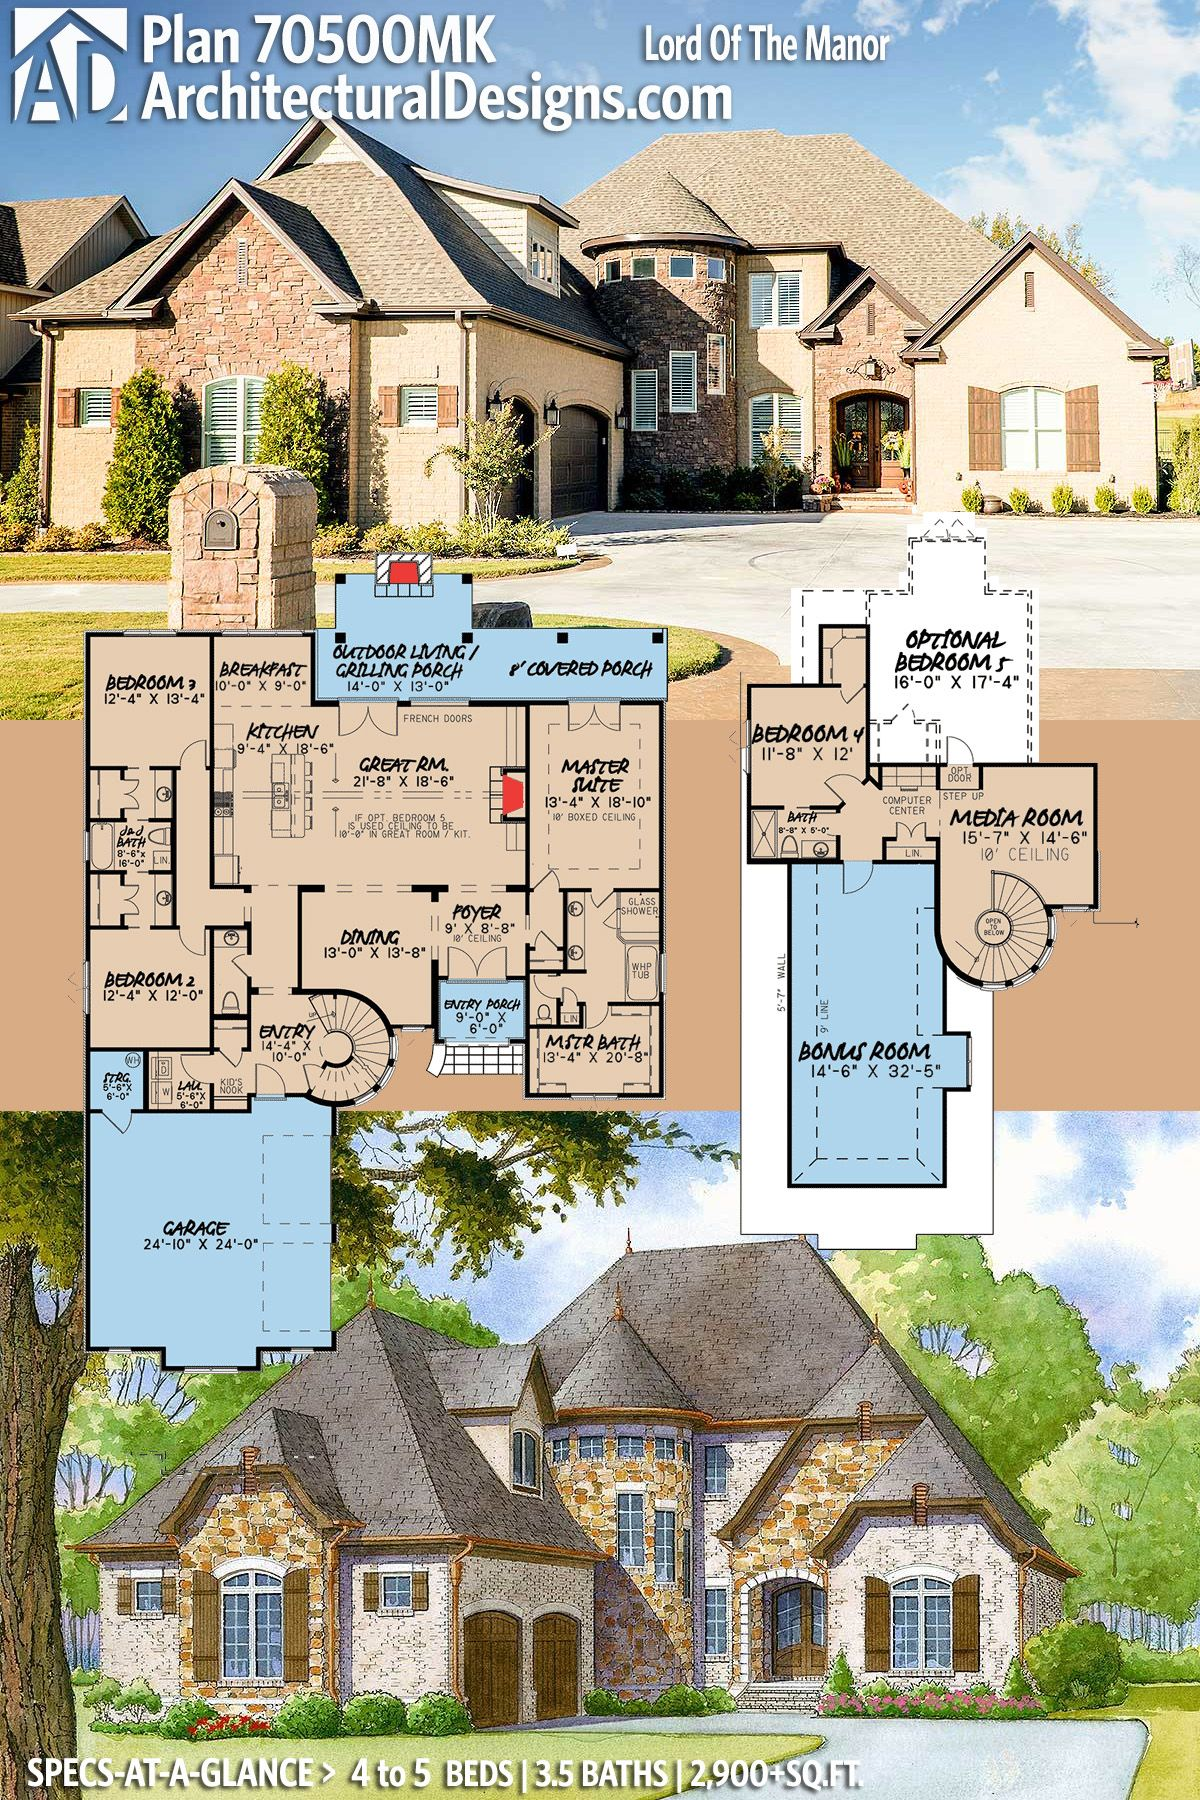 Plan 70500MK: Lord of the Manor in 2019 | House plans ... on green plan, church plan, salvation plan,